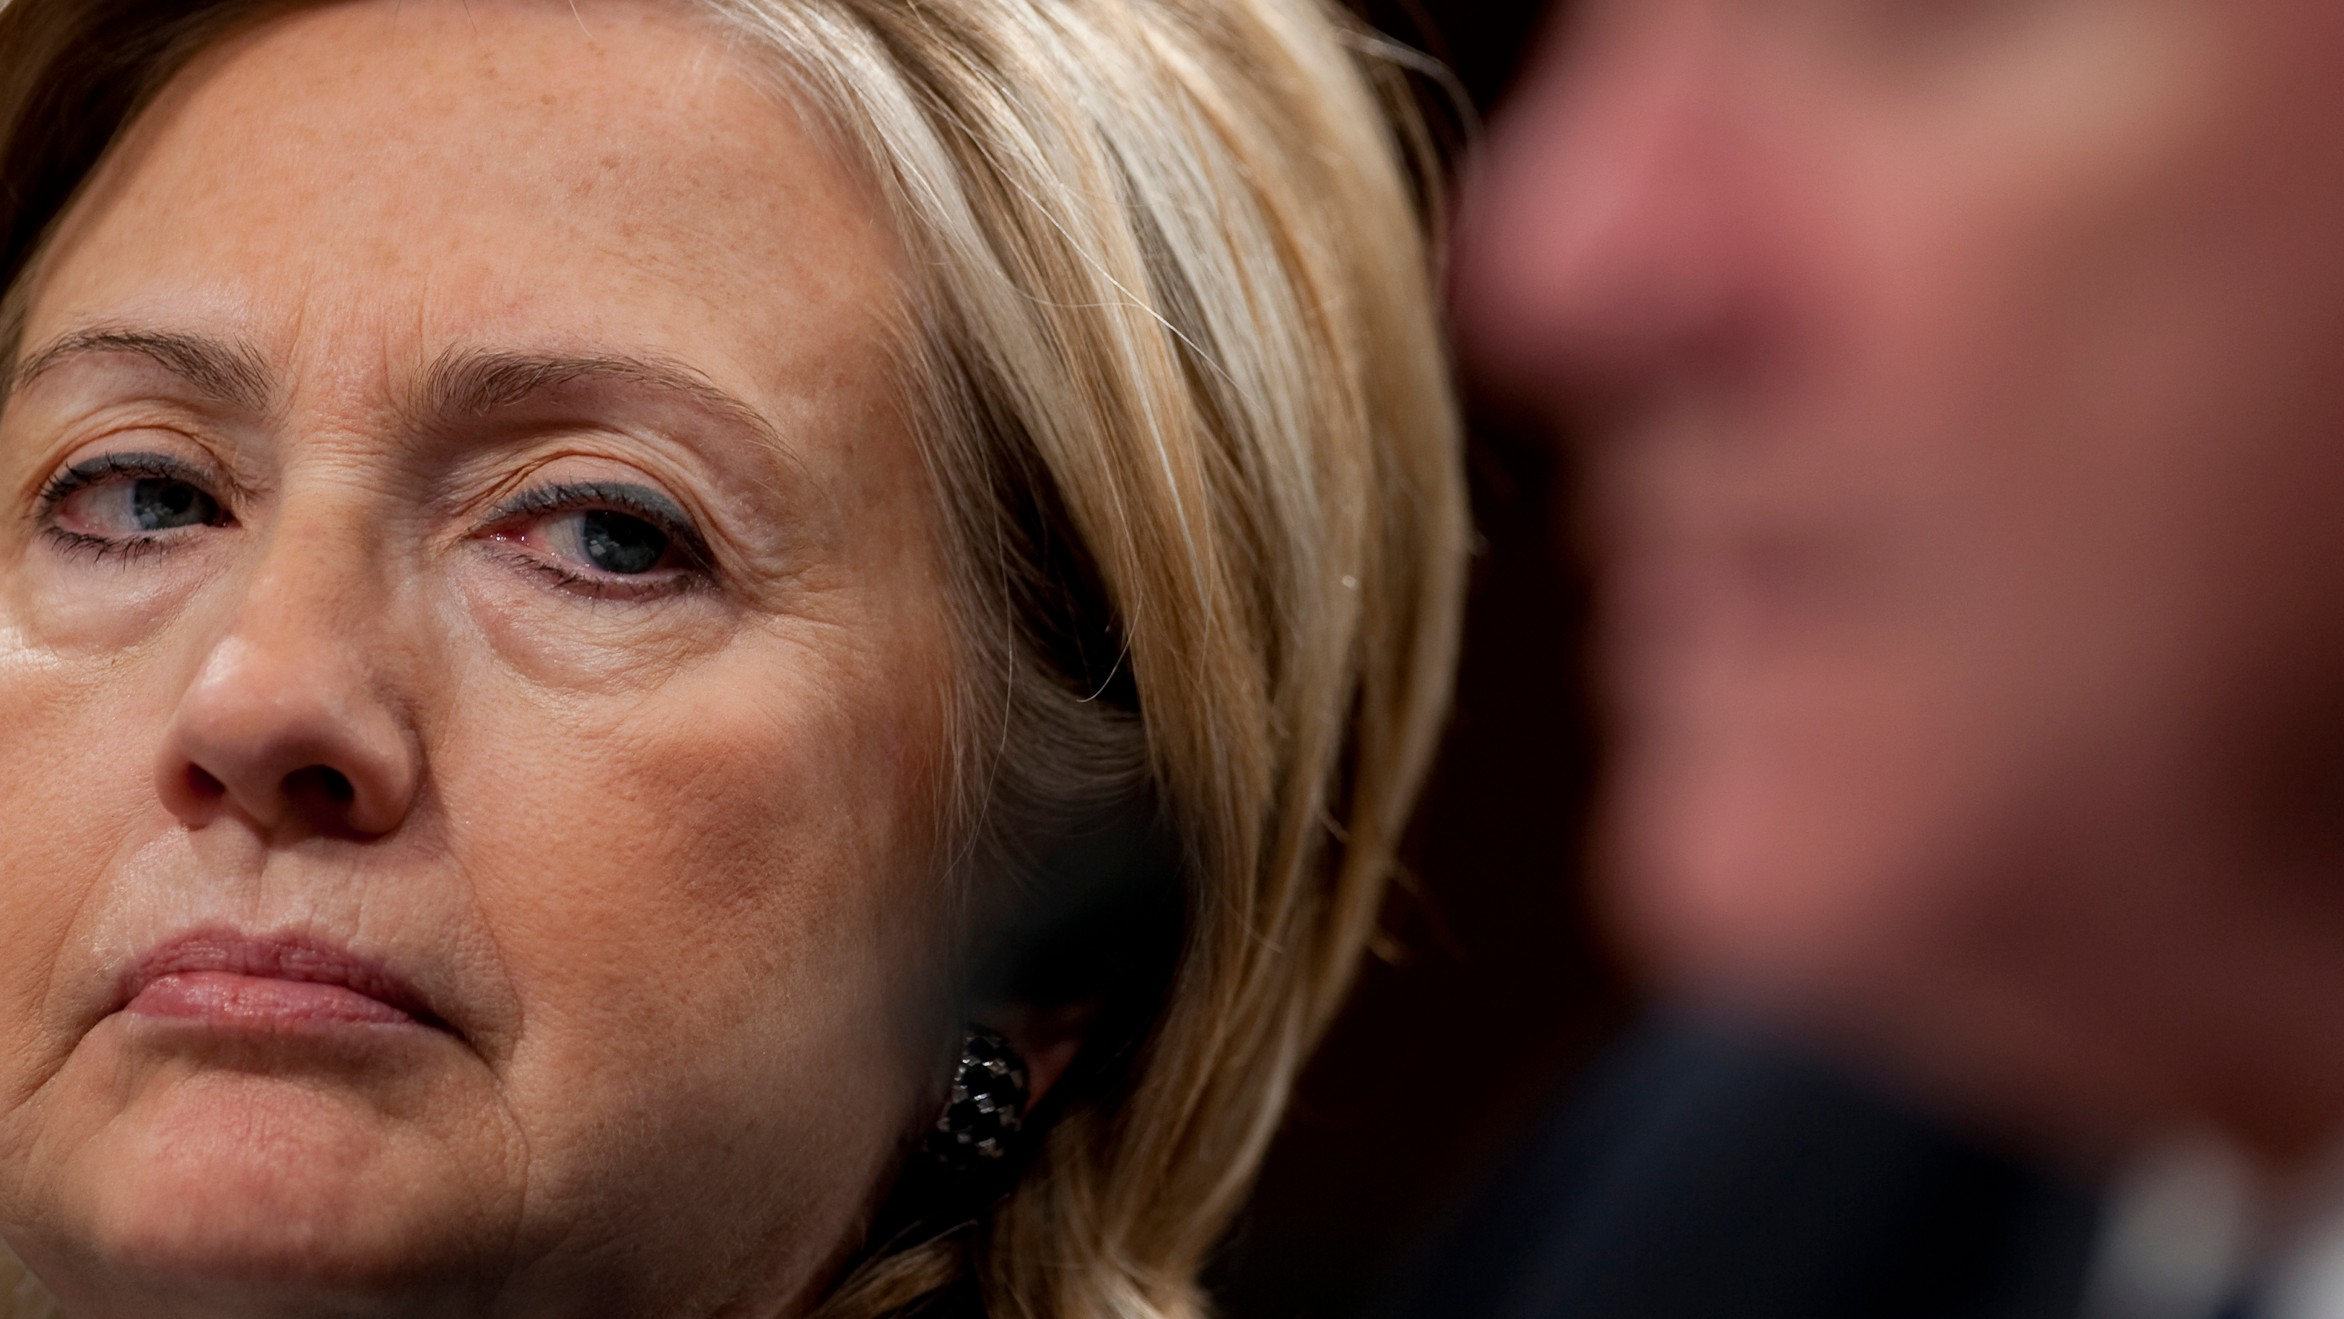 Conservative Group Sponsors Snapchat Filter to Throw Shade at Hillary Clinton